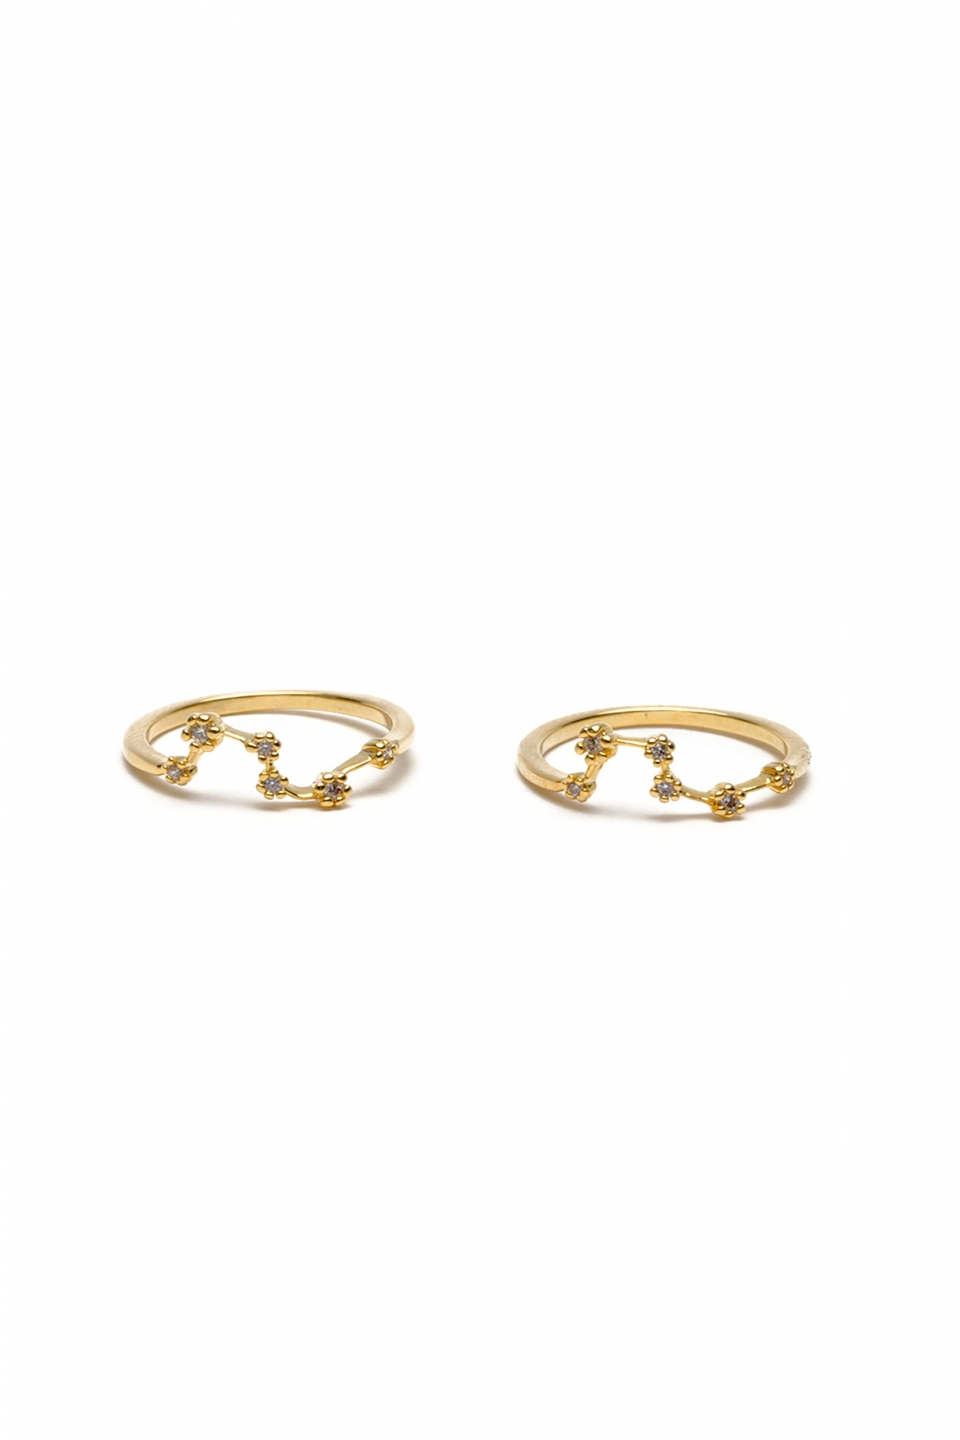 Abrion Gold Midi Ring Duo